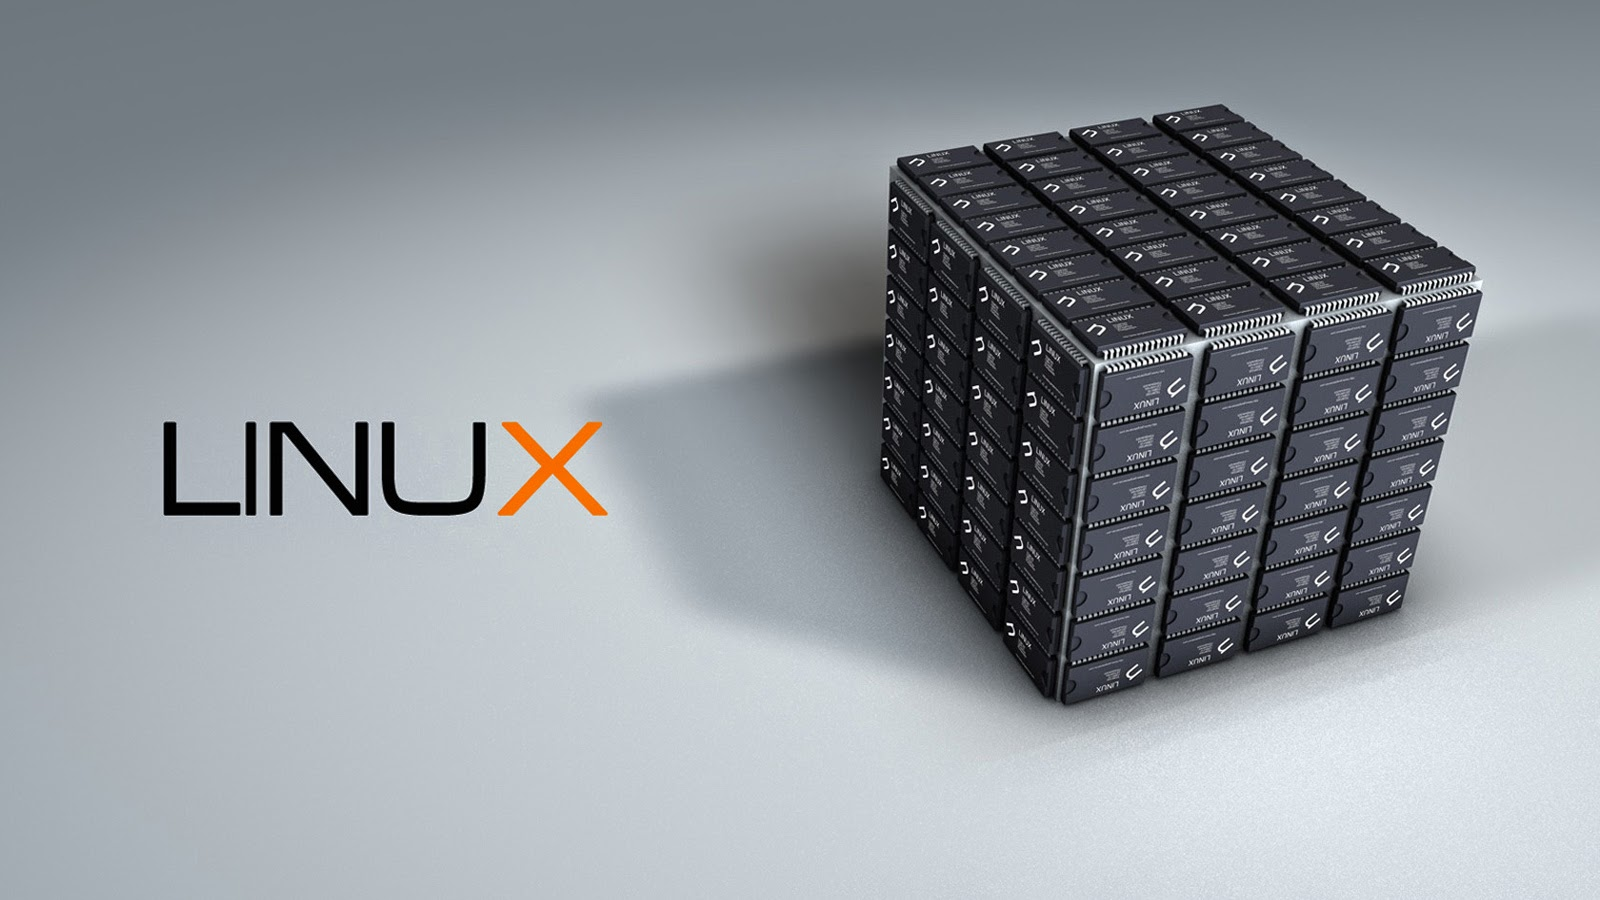 Linux Hacker Wallpaper